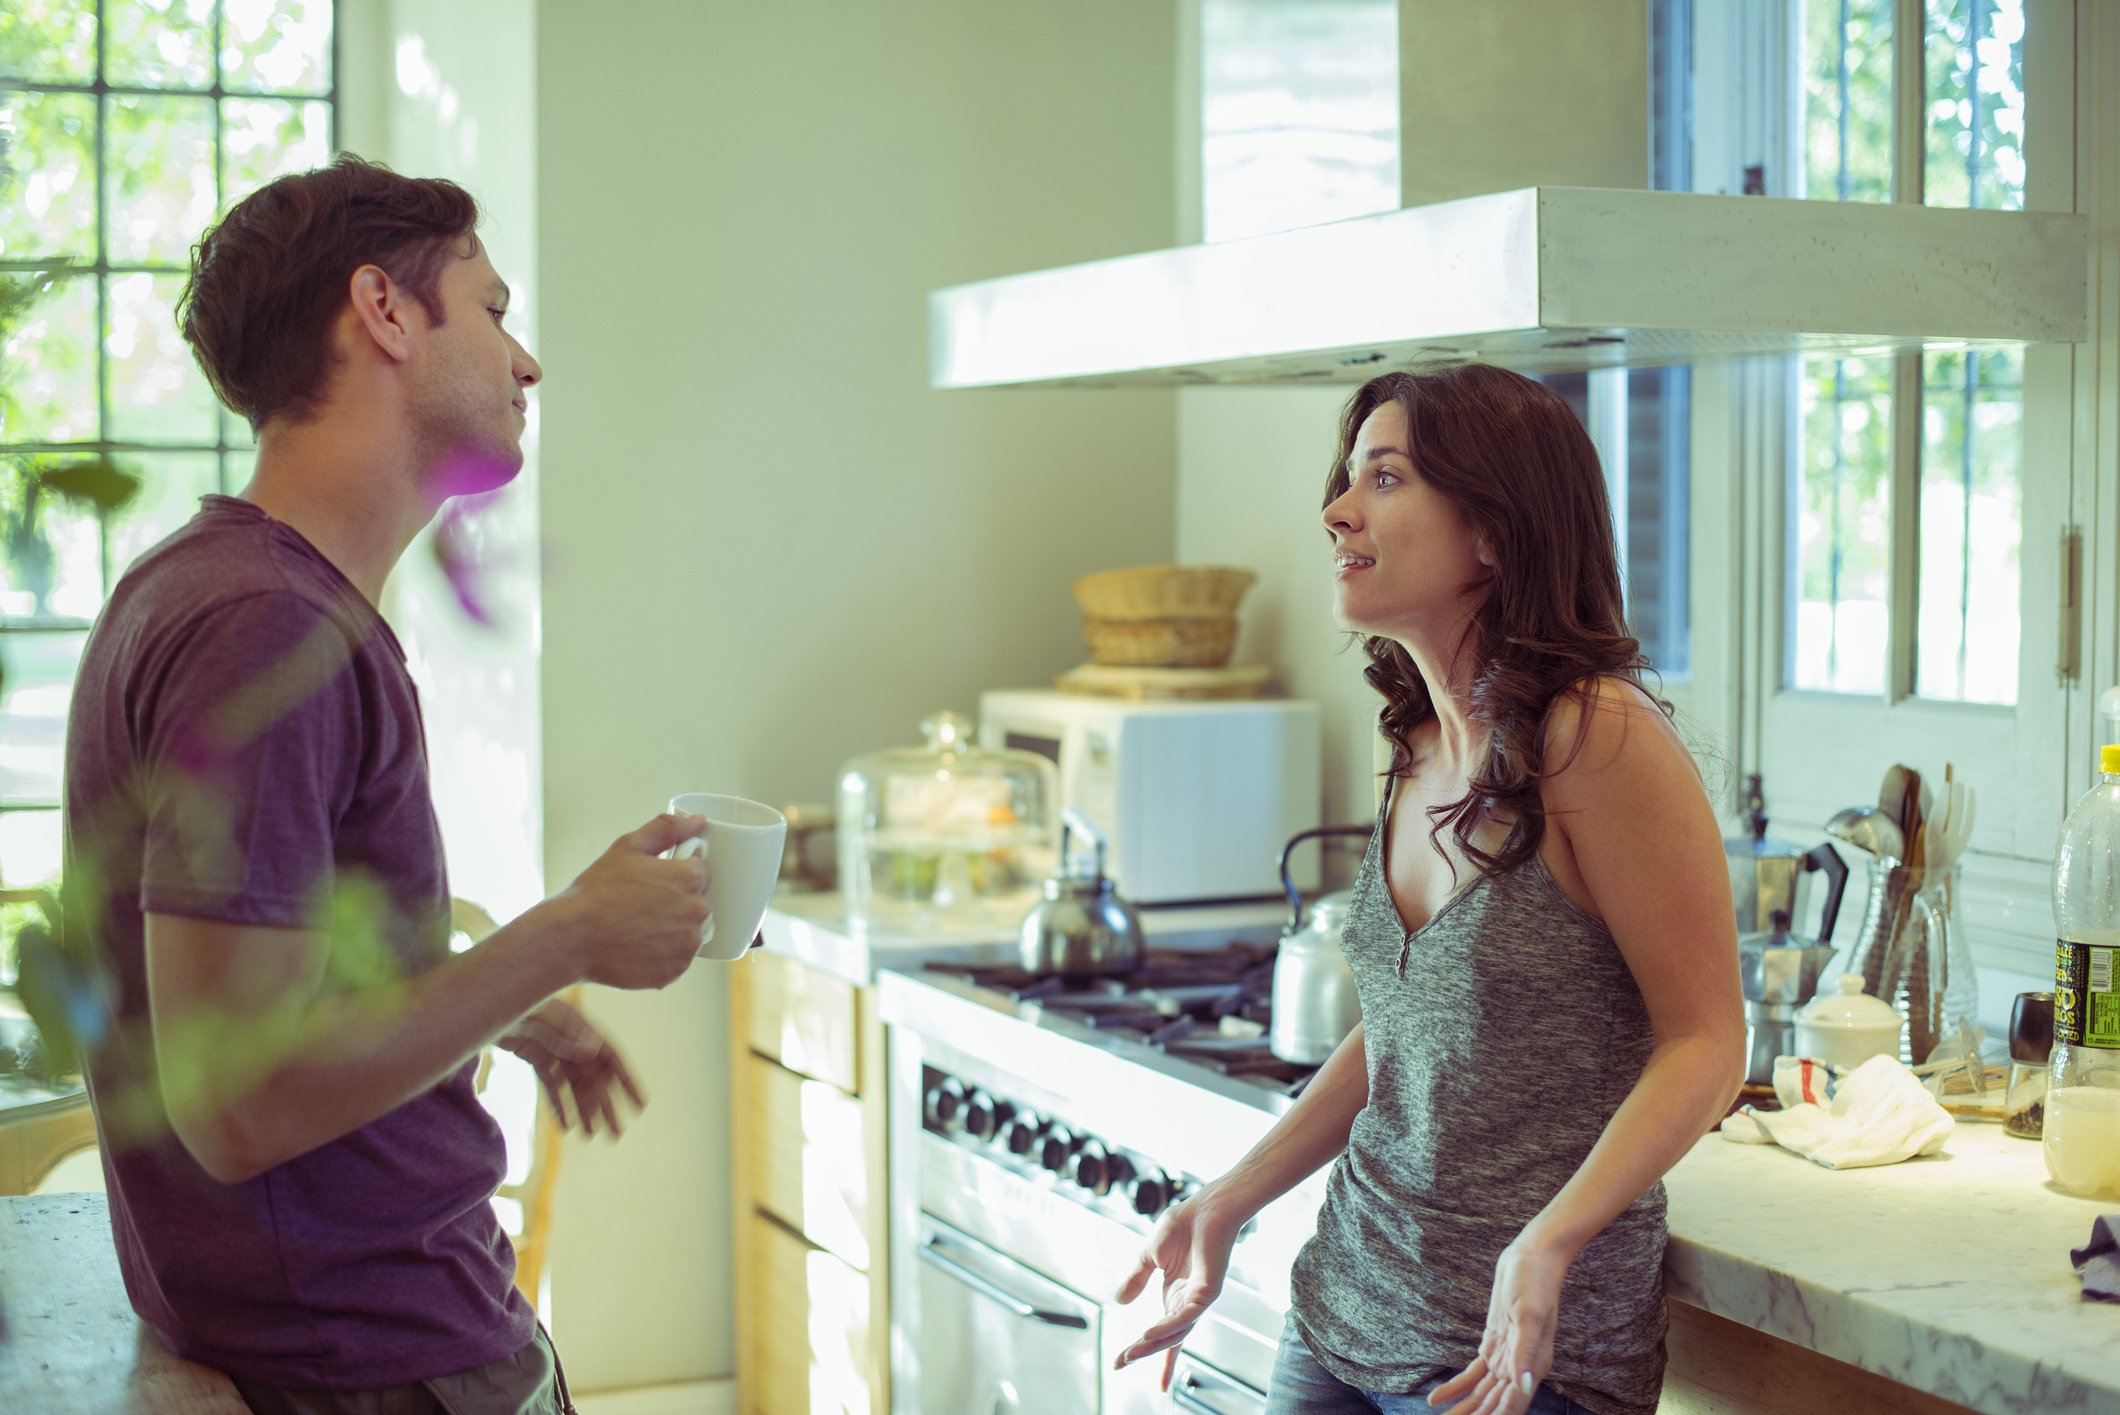 A photo of a couple talking in the kitchen. | Photo: Getty Images